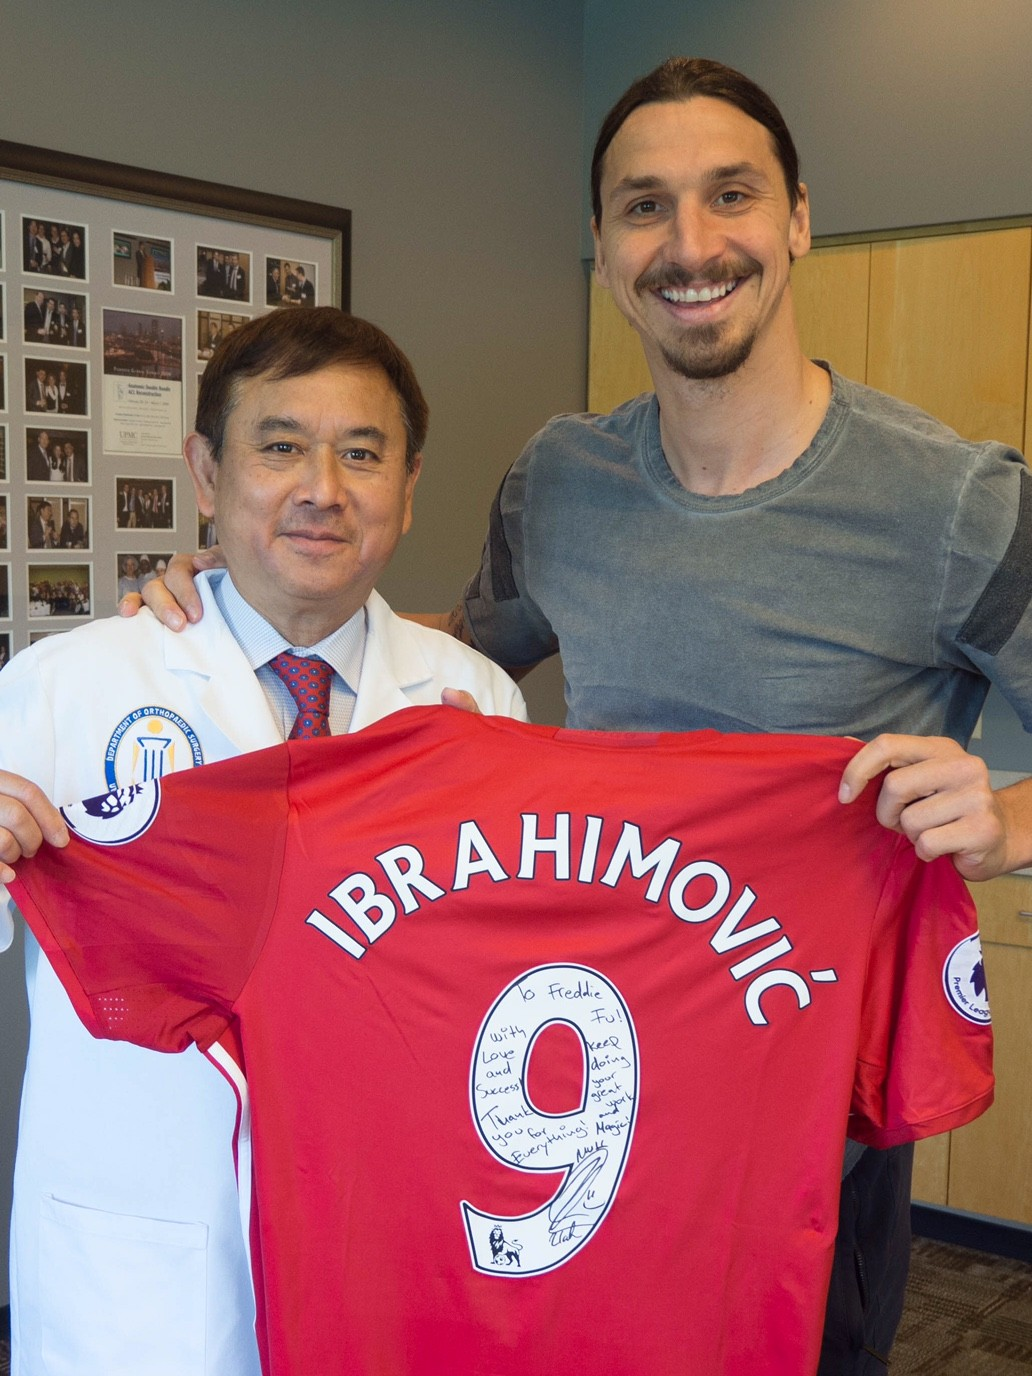 Exclusive Zlatan Ibrahimovic will play on for many years says